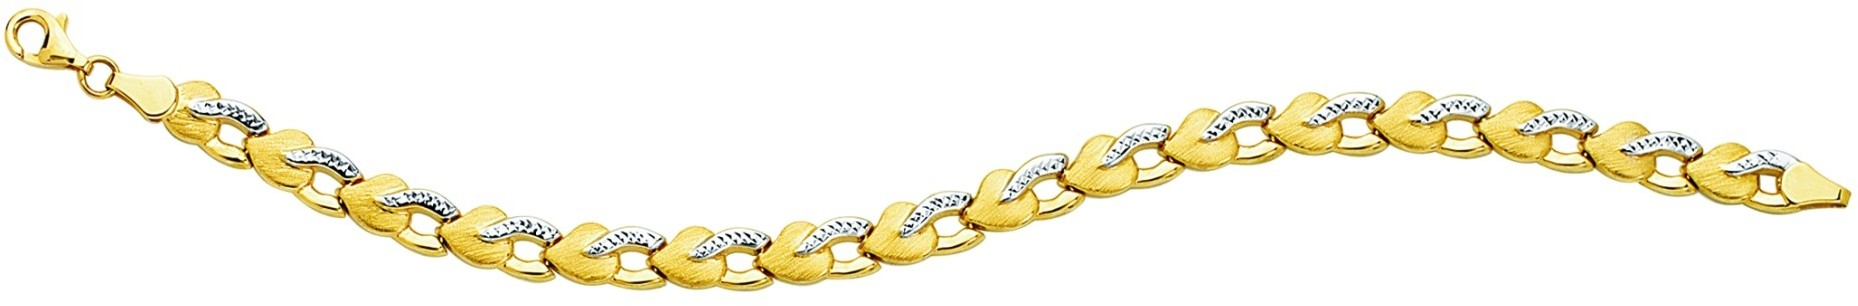 "7.25"" 14K Yellow Gold 6.20mm (1/4"") Polished Diamond Cut Textured Heart Like Fancy Bracelet w/ Pear Shape Clasp"